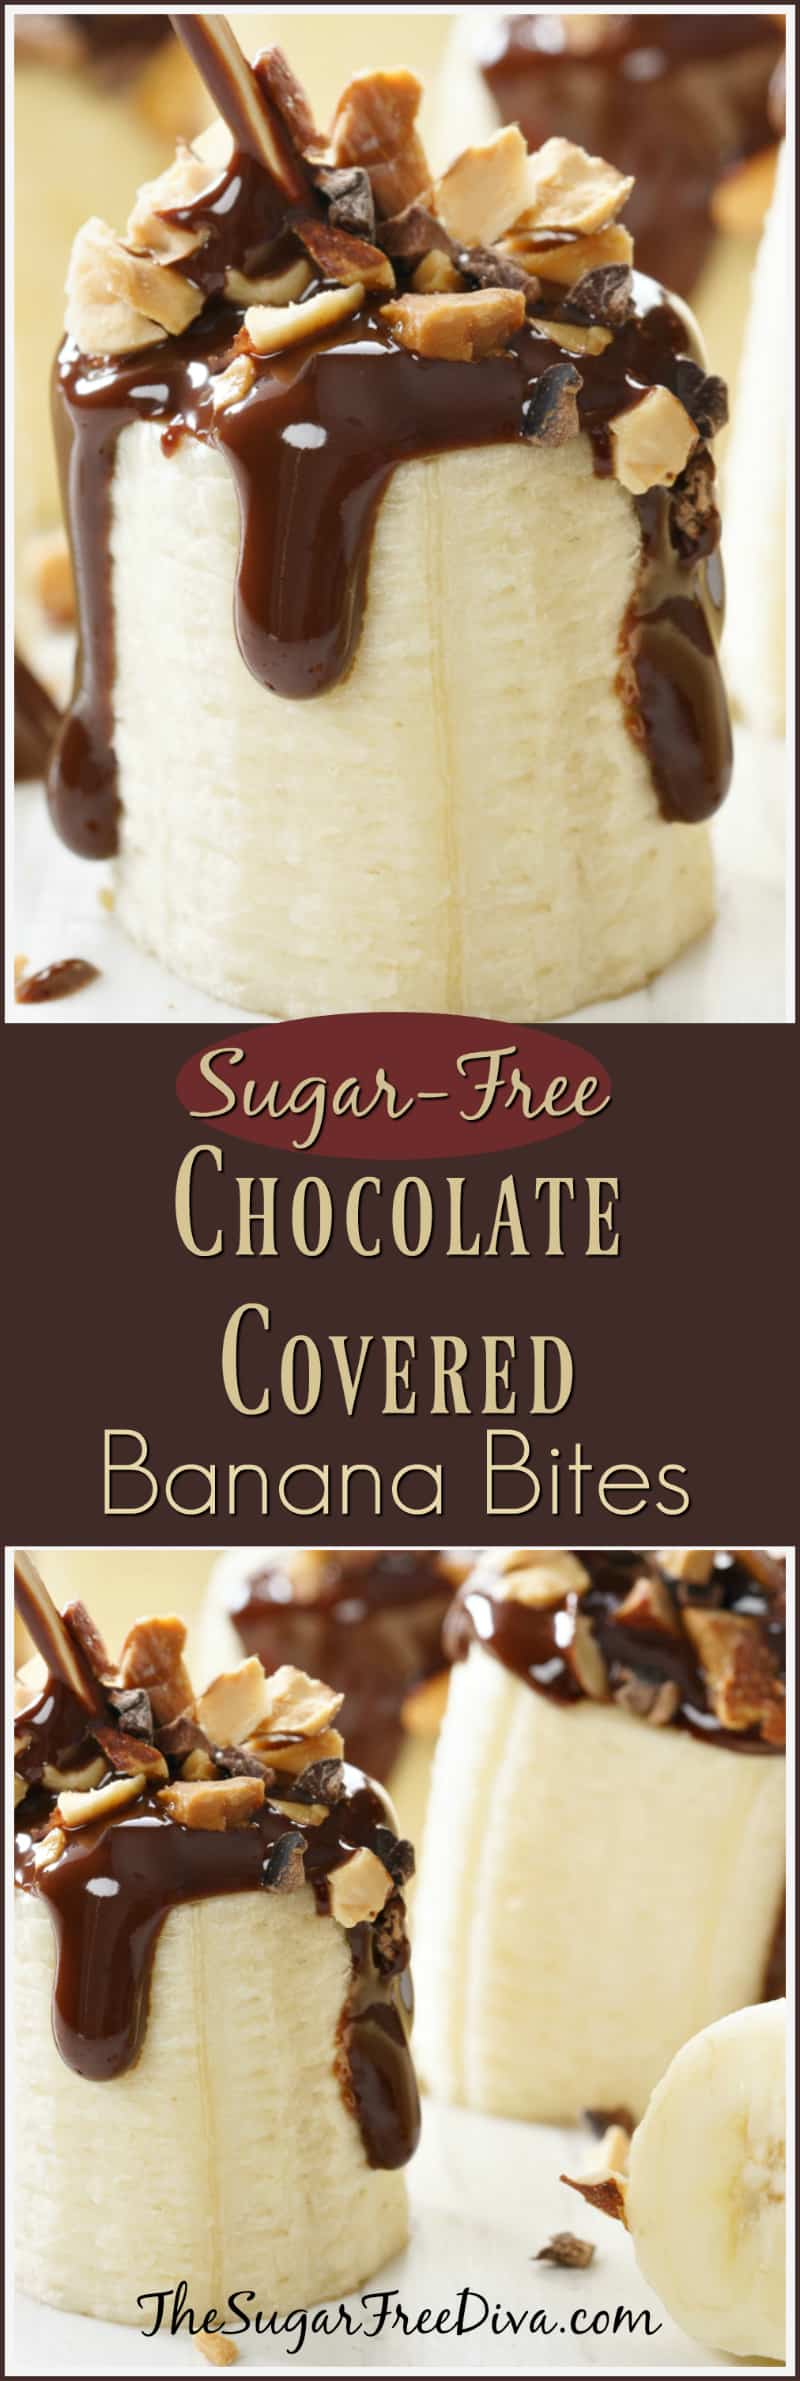 How to Make Sugar Free Chocolate Banana Bites